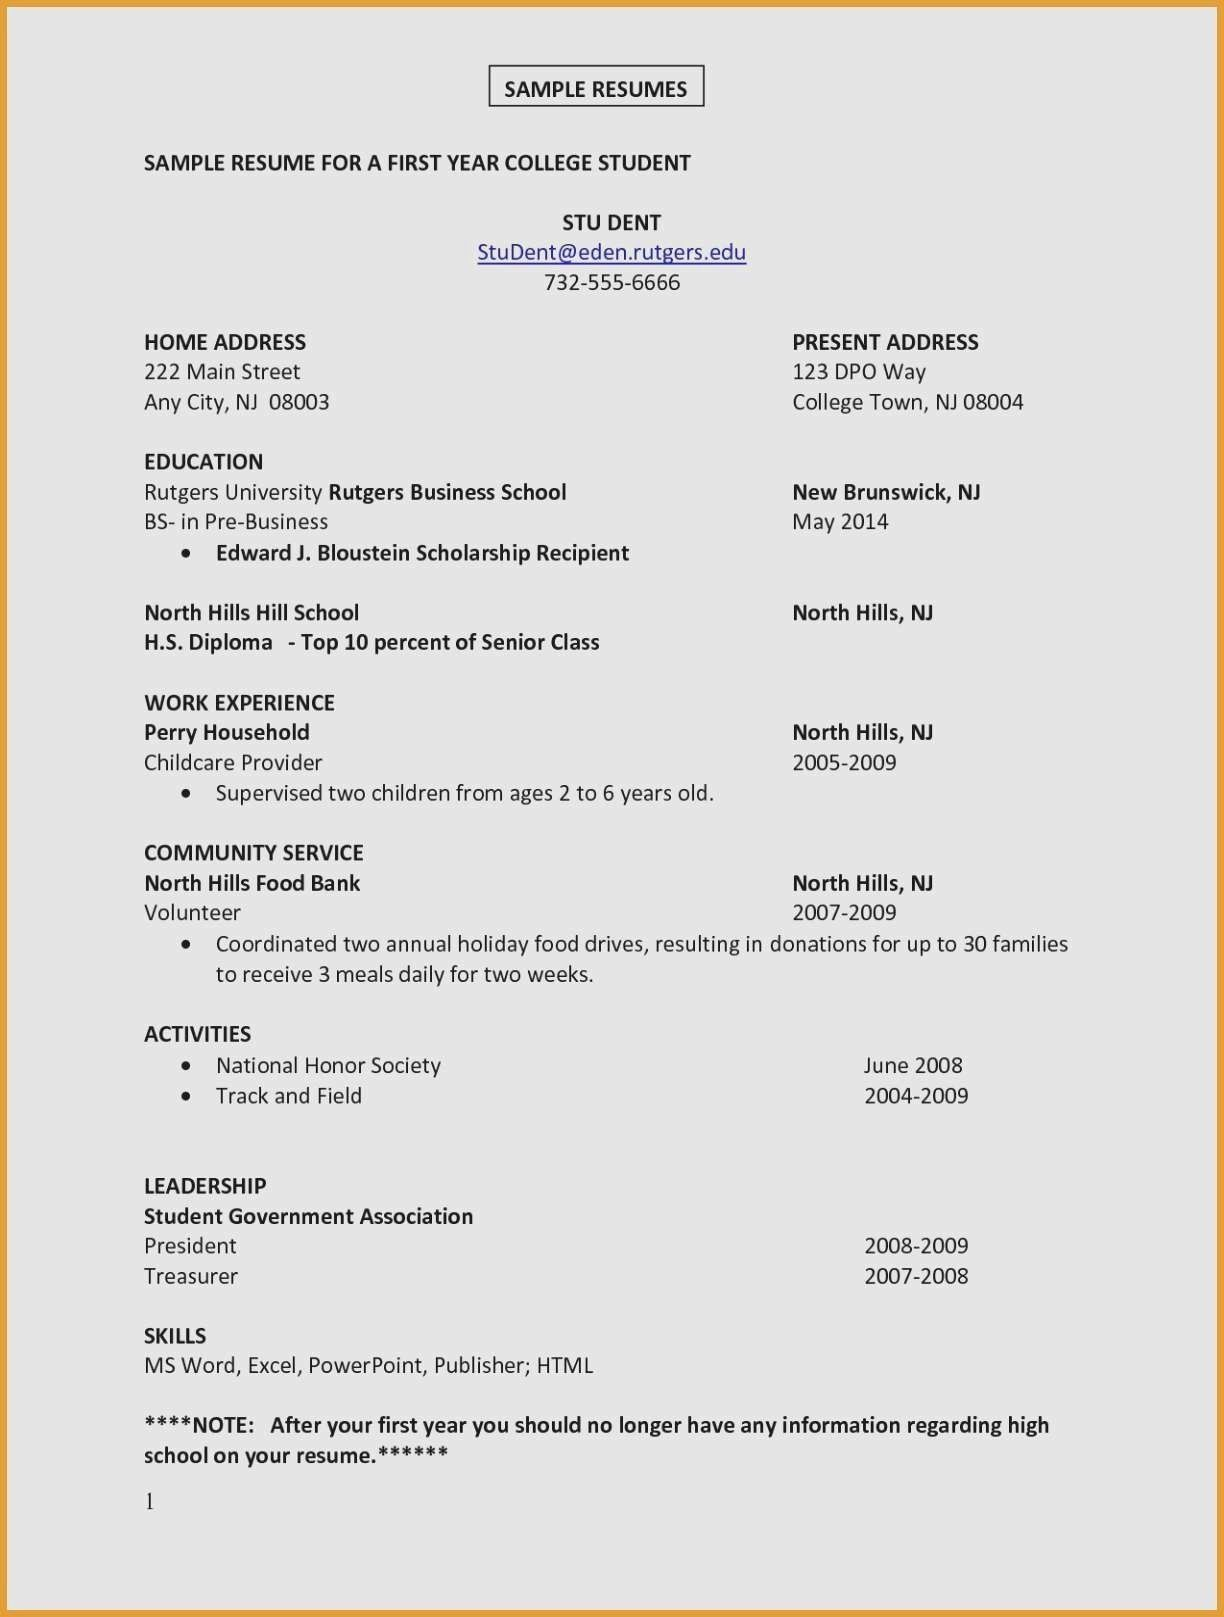 Community Service On Resume Lovely Title Resume for